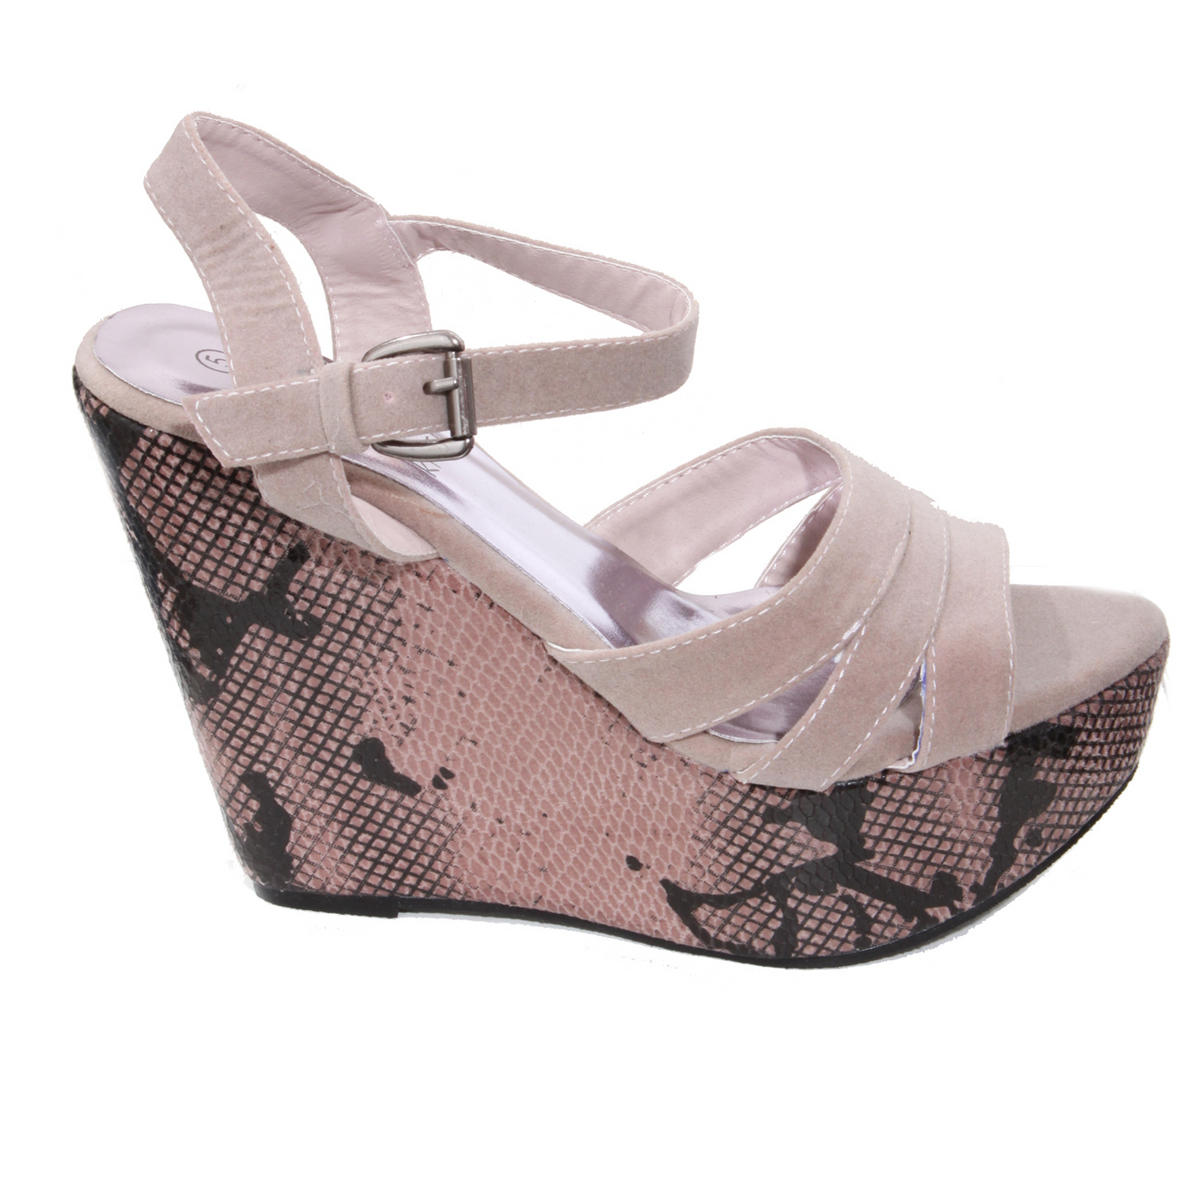 Suedette Strap Snakeskin Wedge Sandal Preview